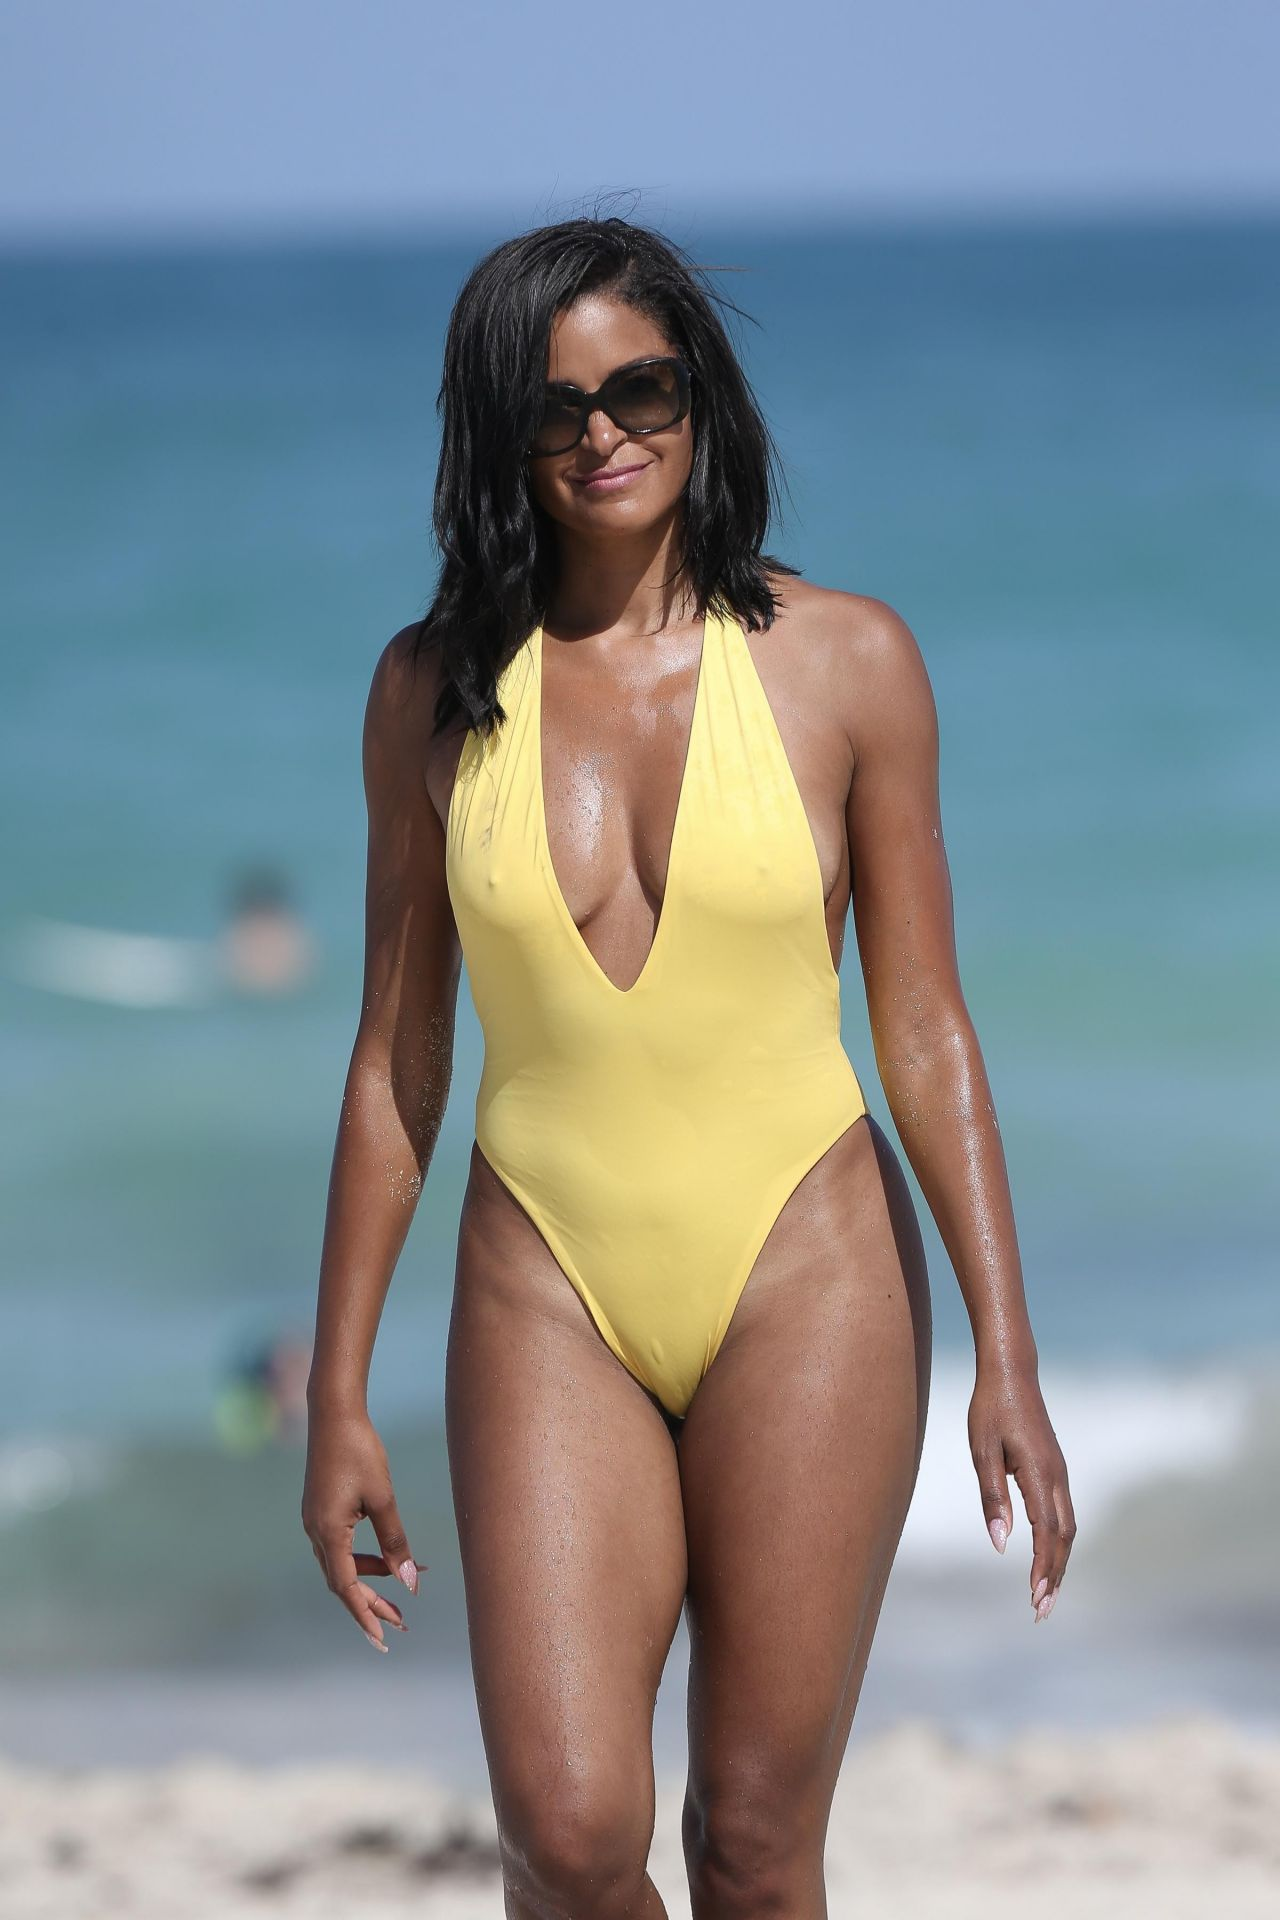 Claudia Jordan In A Yellow Swimsuit Celebrates Her 45th